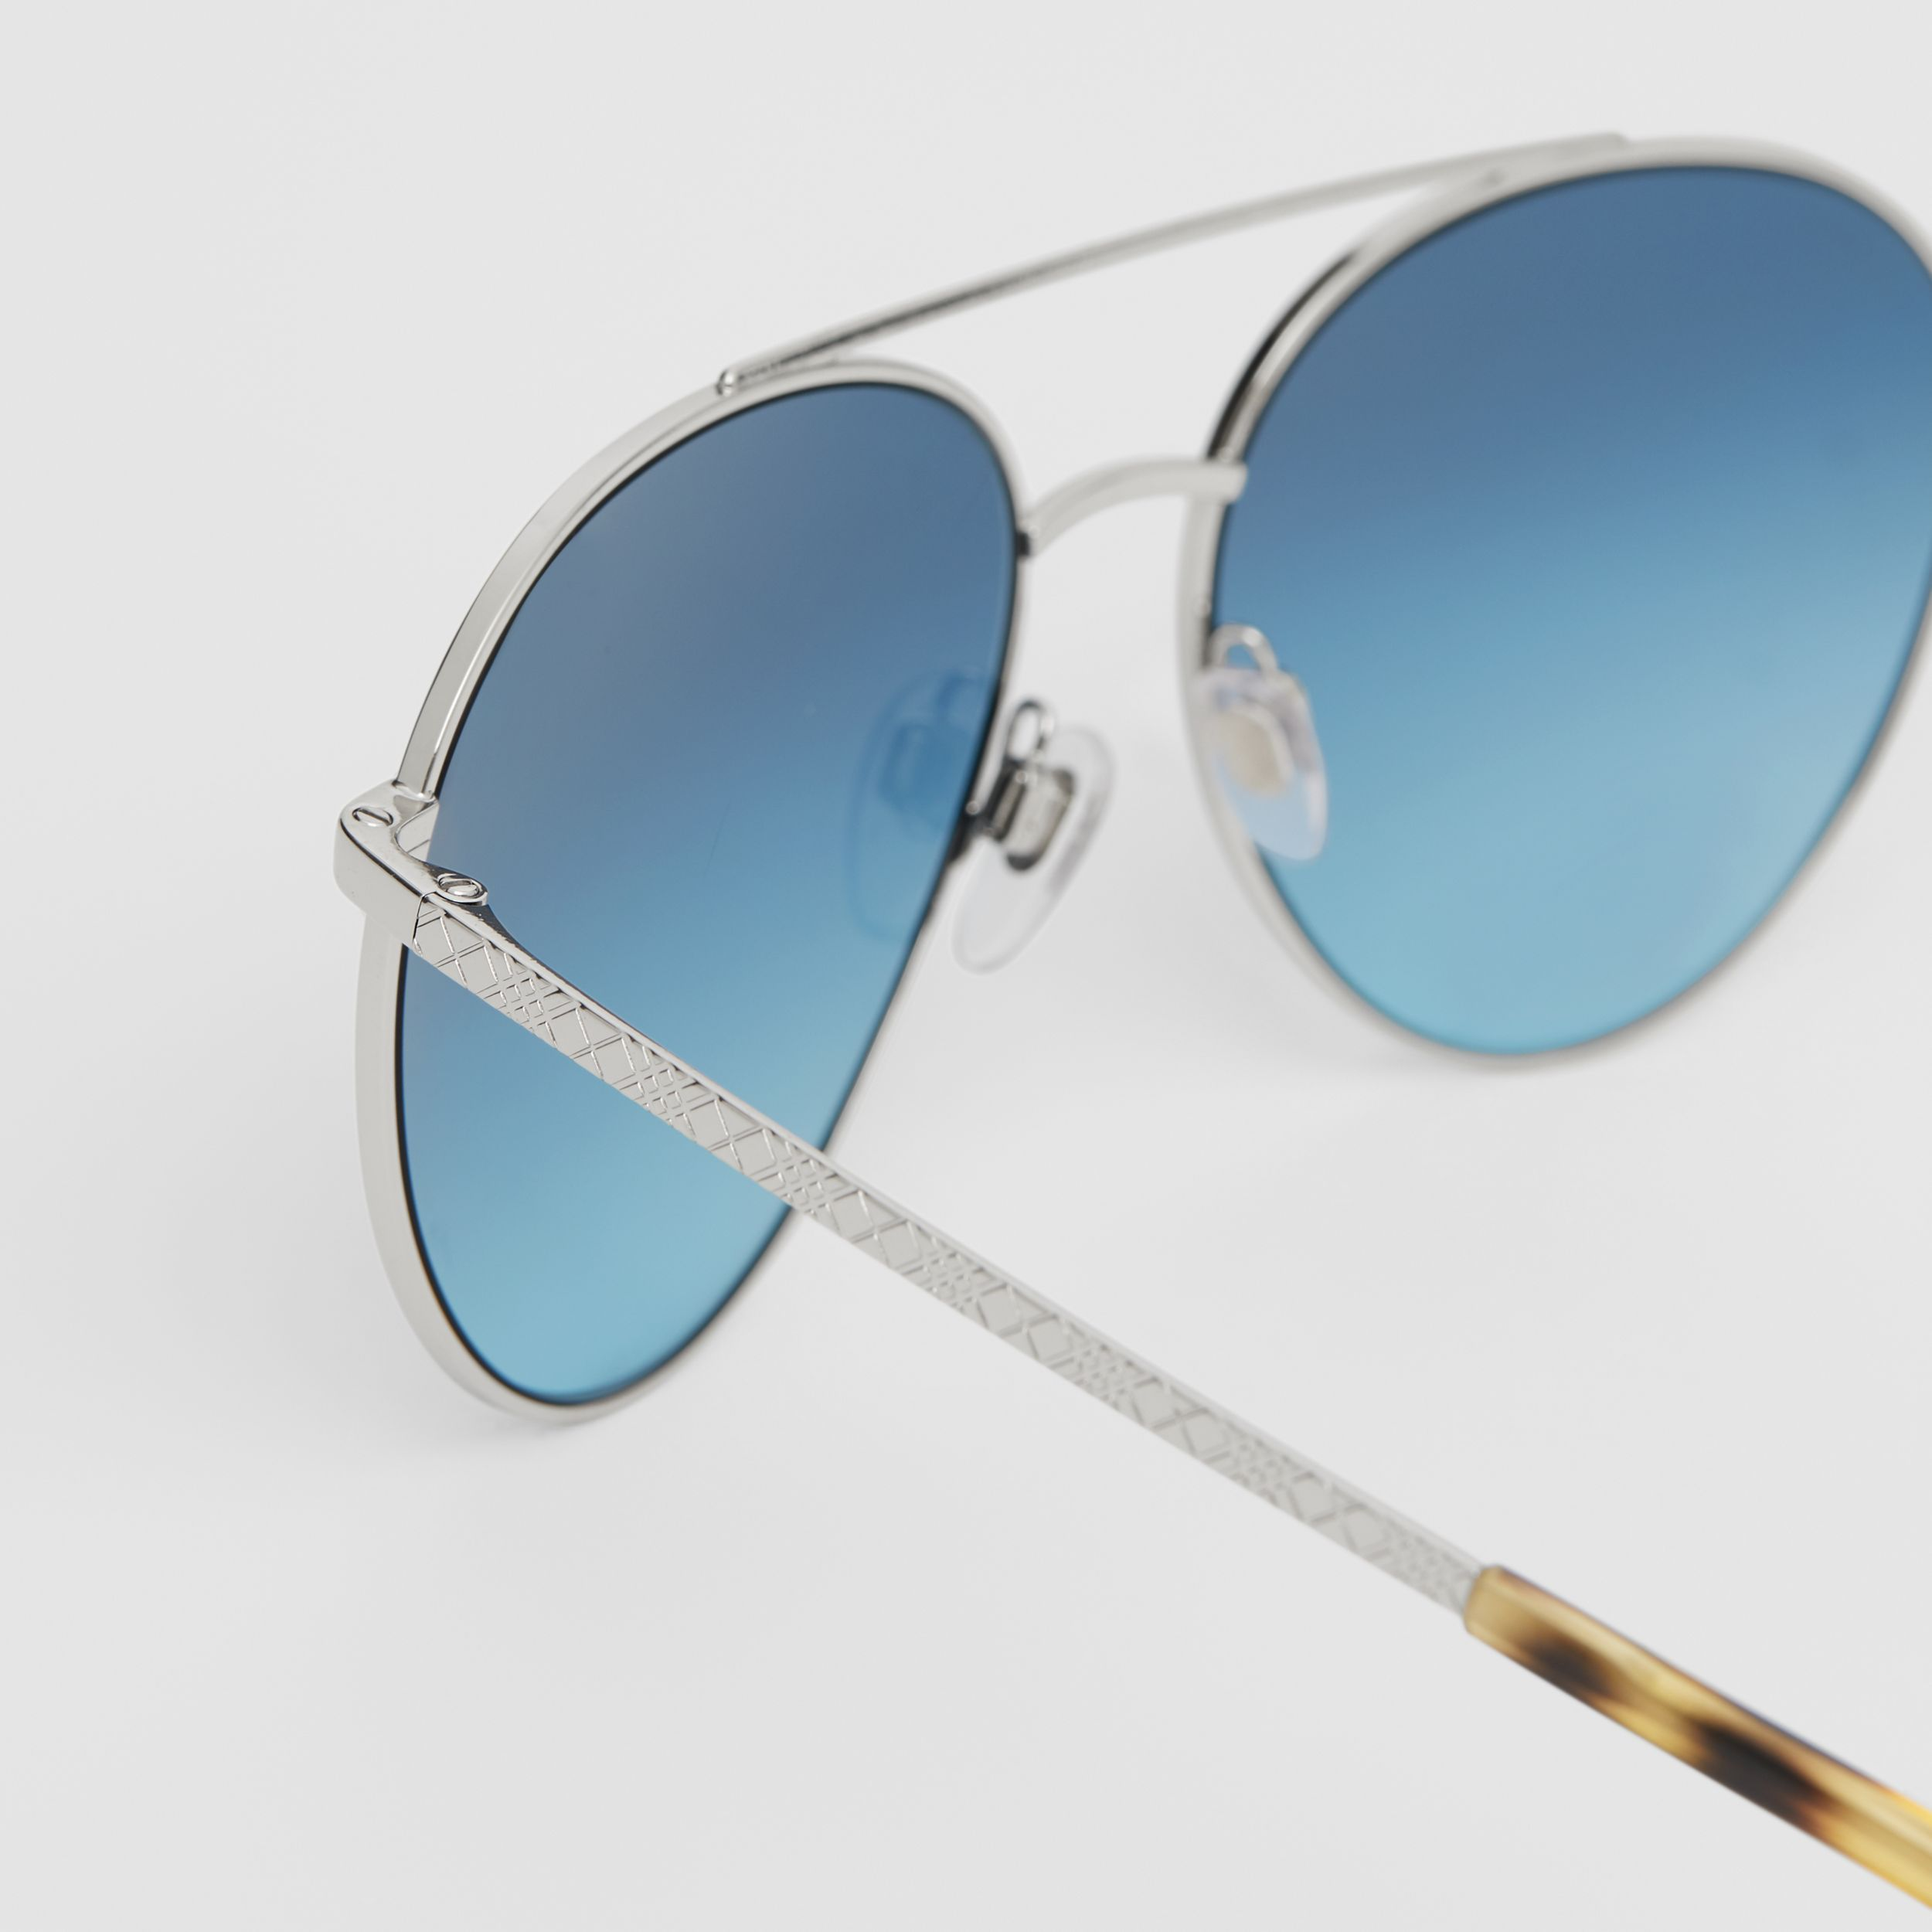 Pilot Sunglasses in Pale Blue - Women | Burberry - 2